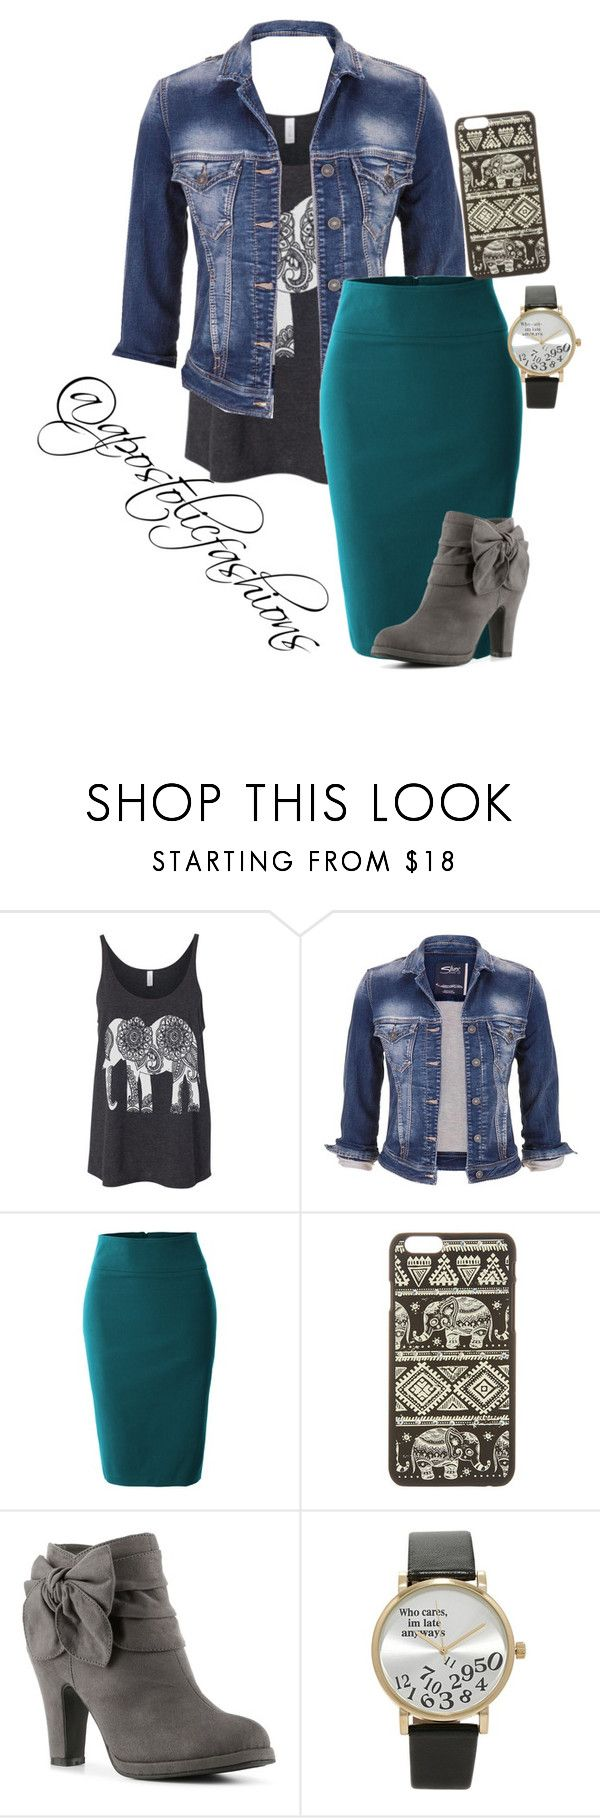 """""""Apostolic Fashions #1410"""" by apostolicfashions on Polyvore featuring maurices, LE3NO, Rampage and Forever 21"""